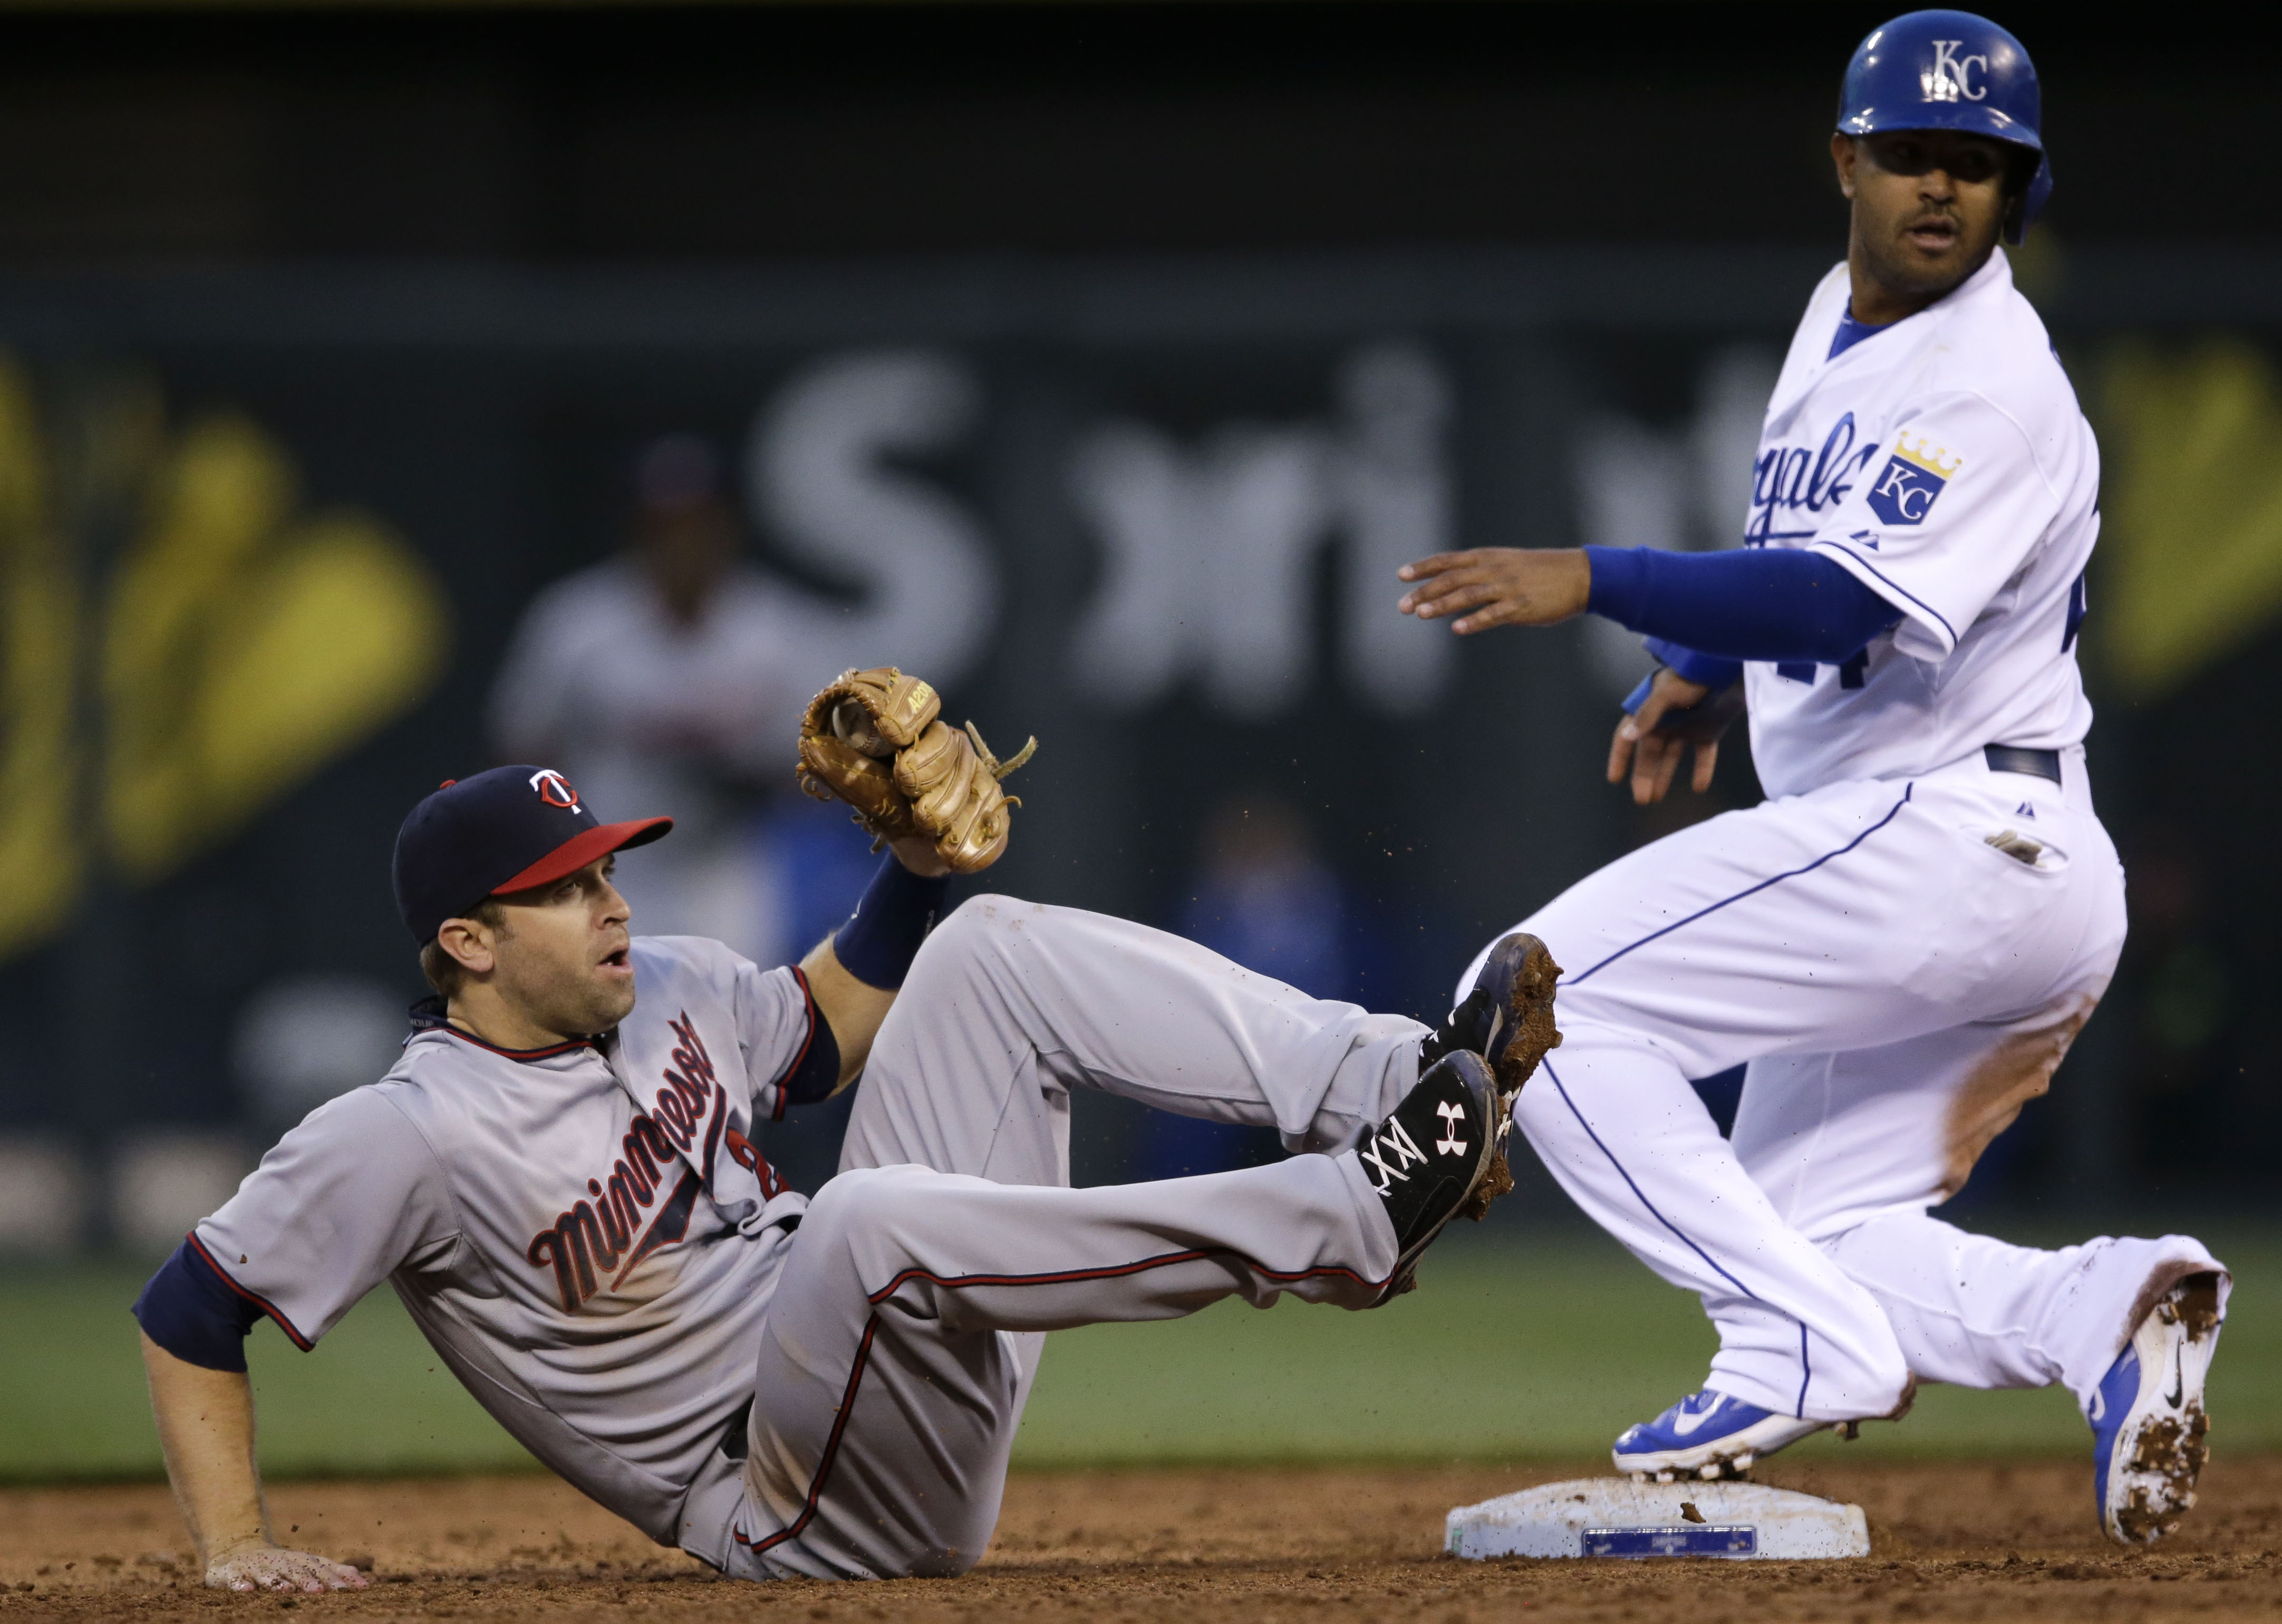 Minnesota Twins second baseman Brian Dozier, left, falls to the ground after forcing out Kansas City Royals' Christian Colon, right, during the second inning of a baseball game at Kauffman Stadium in Kansas City, Mo., Monday, April 20, 2015. (AP Photo/Orl